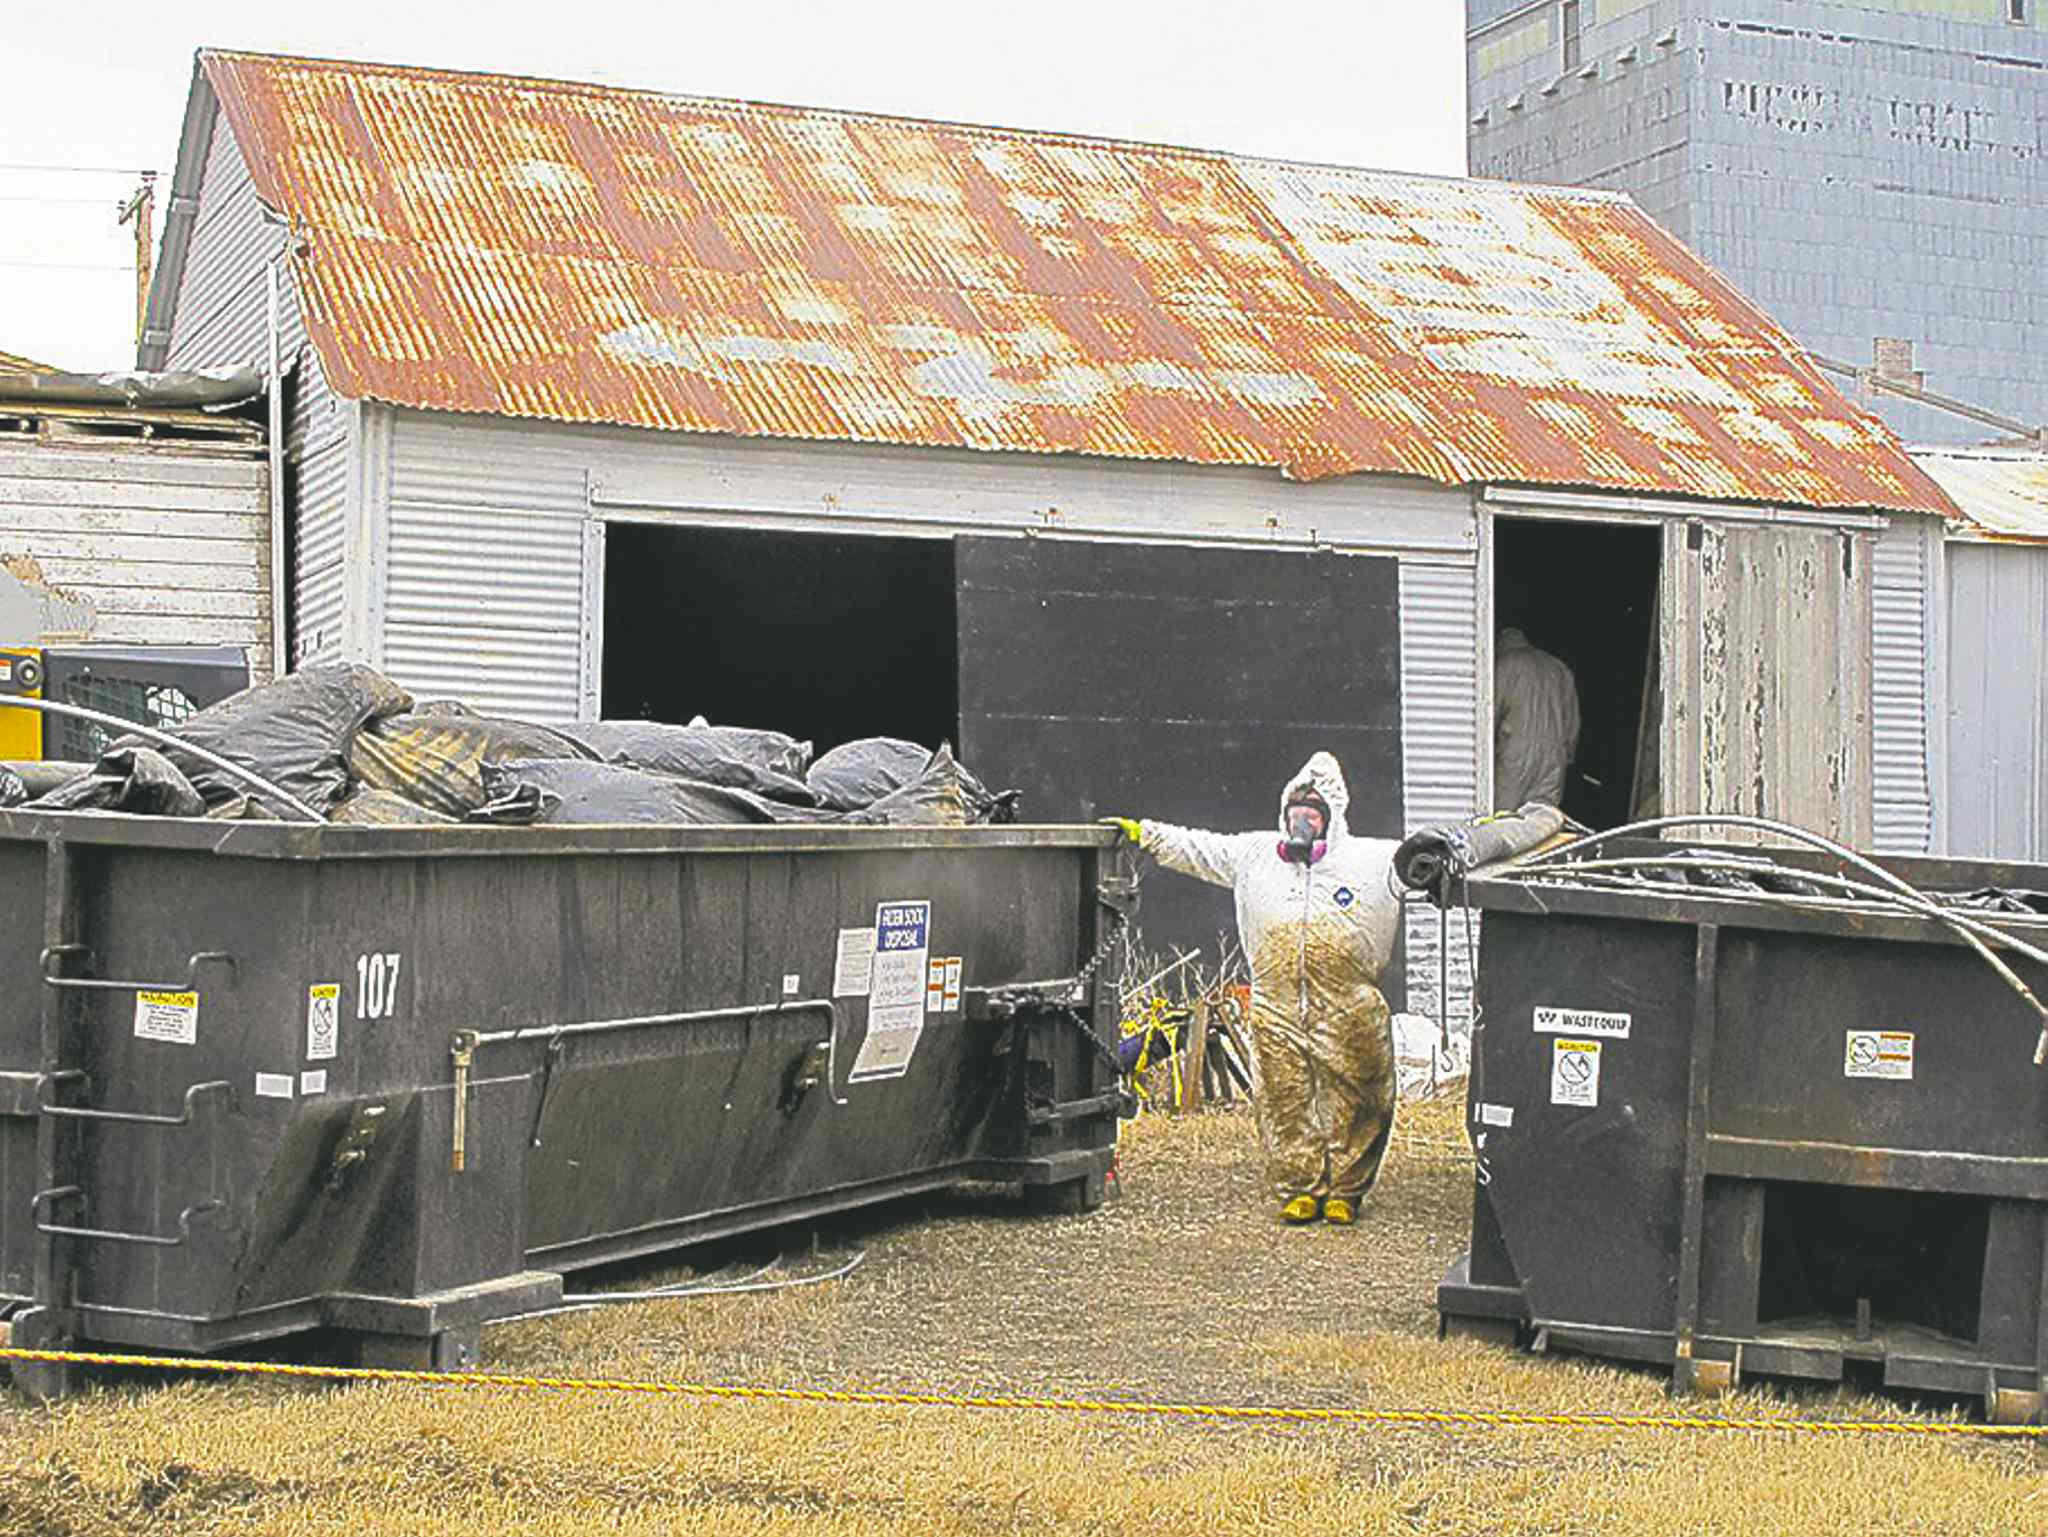 Workers clean up an illegal filter sock dump in Noonan, N.D., on Wednesday.